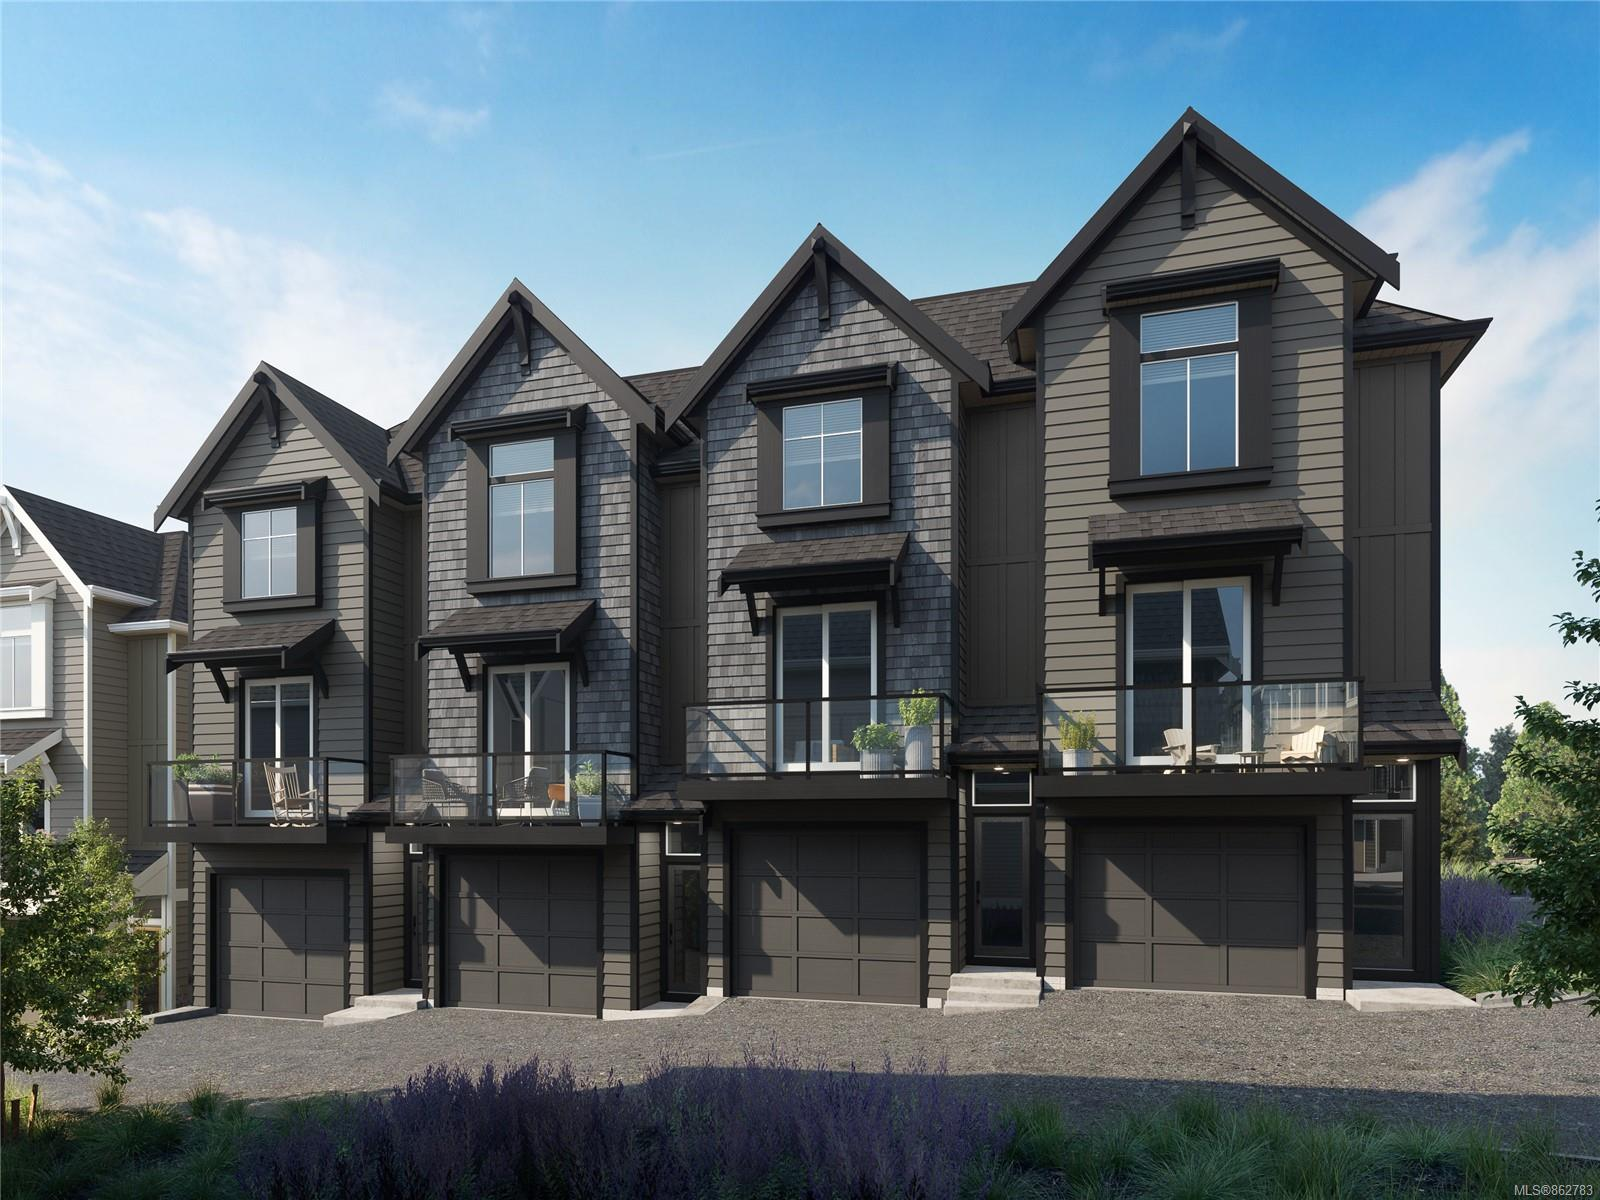 2 Bedroom, 3 Bathroom, Condo/Townhouse in Langford